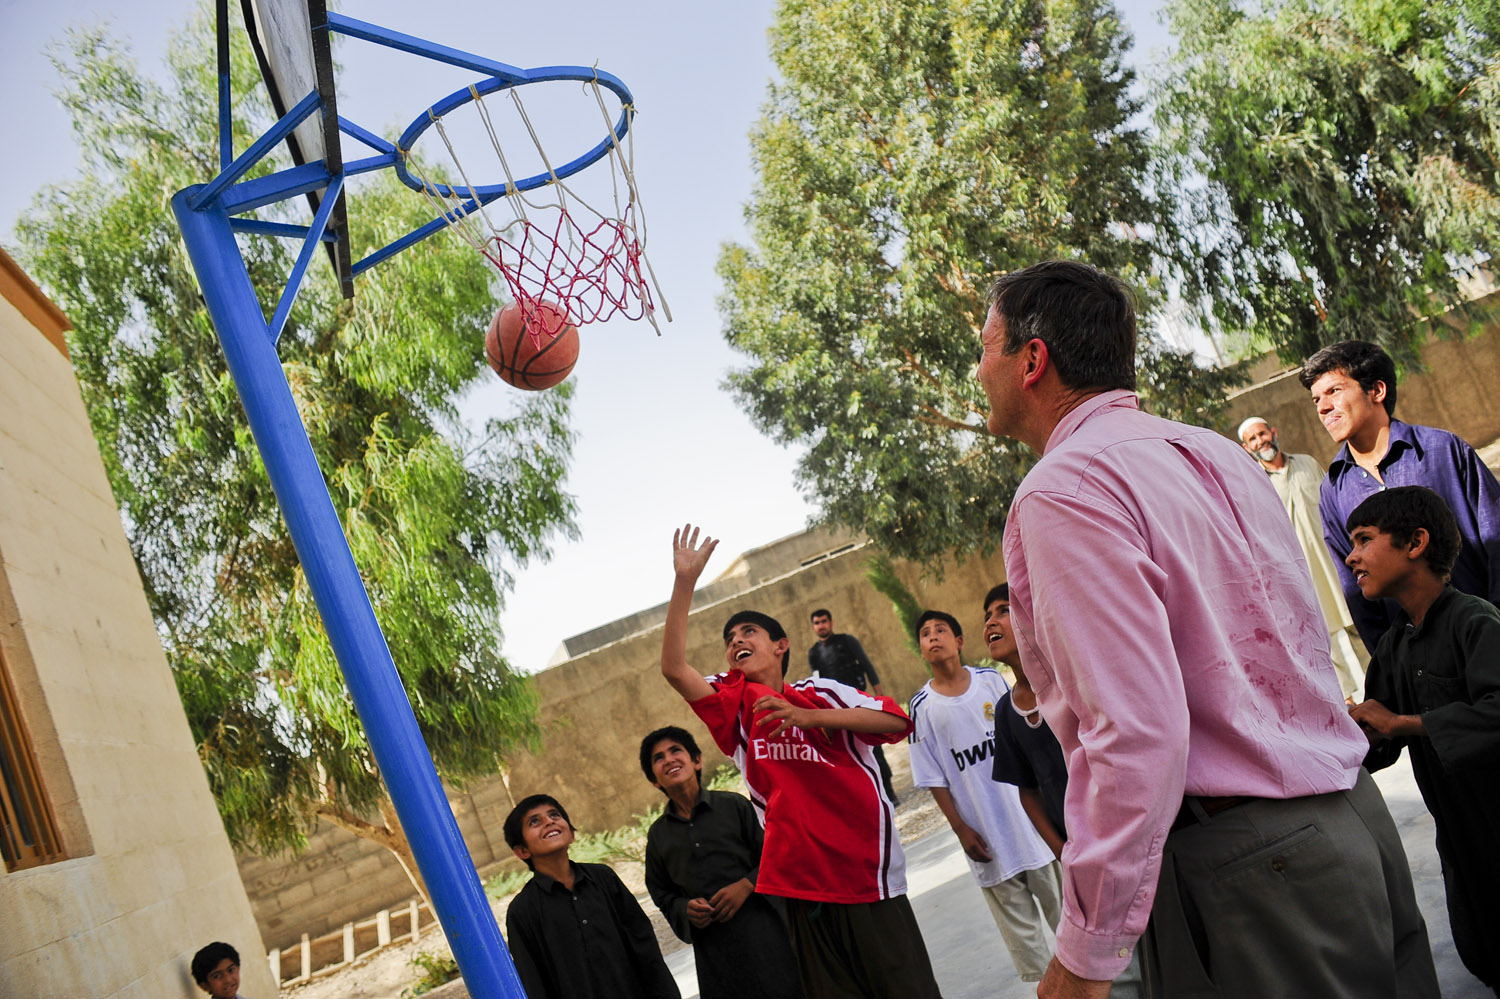 Kids_playing_basketball_in_Farah.jpg